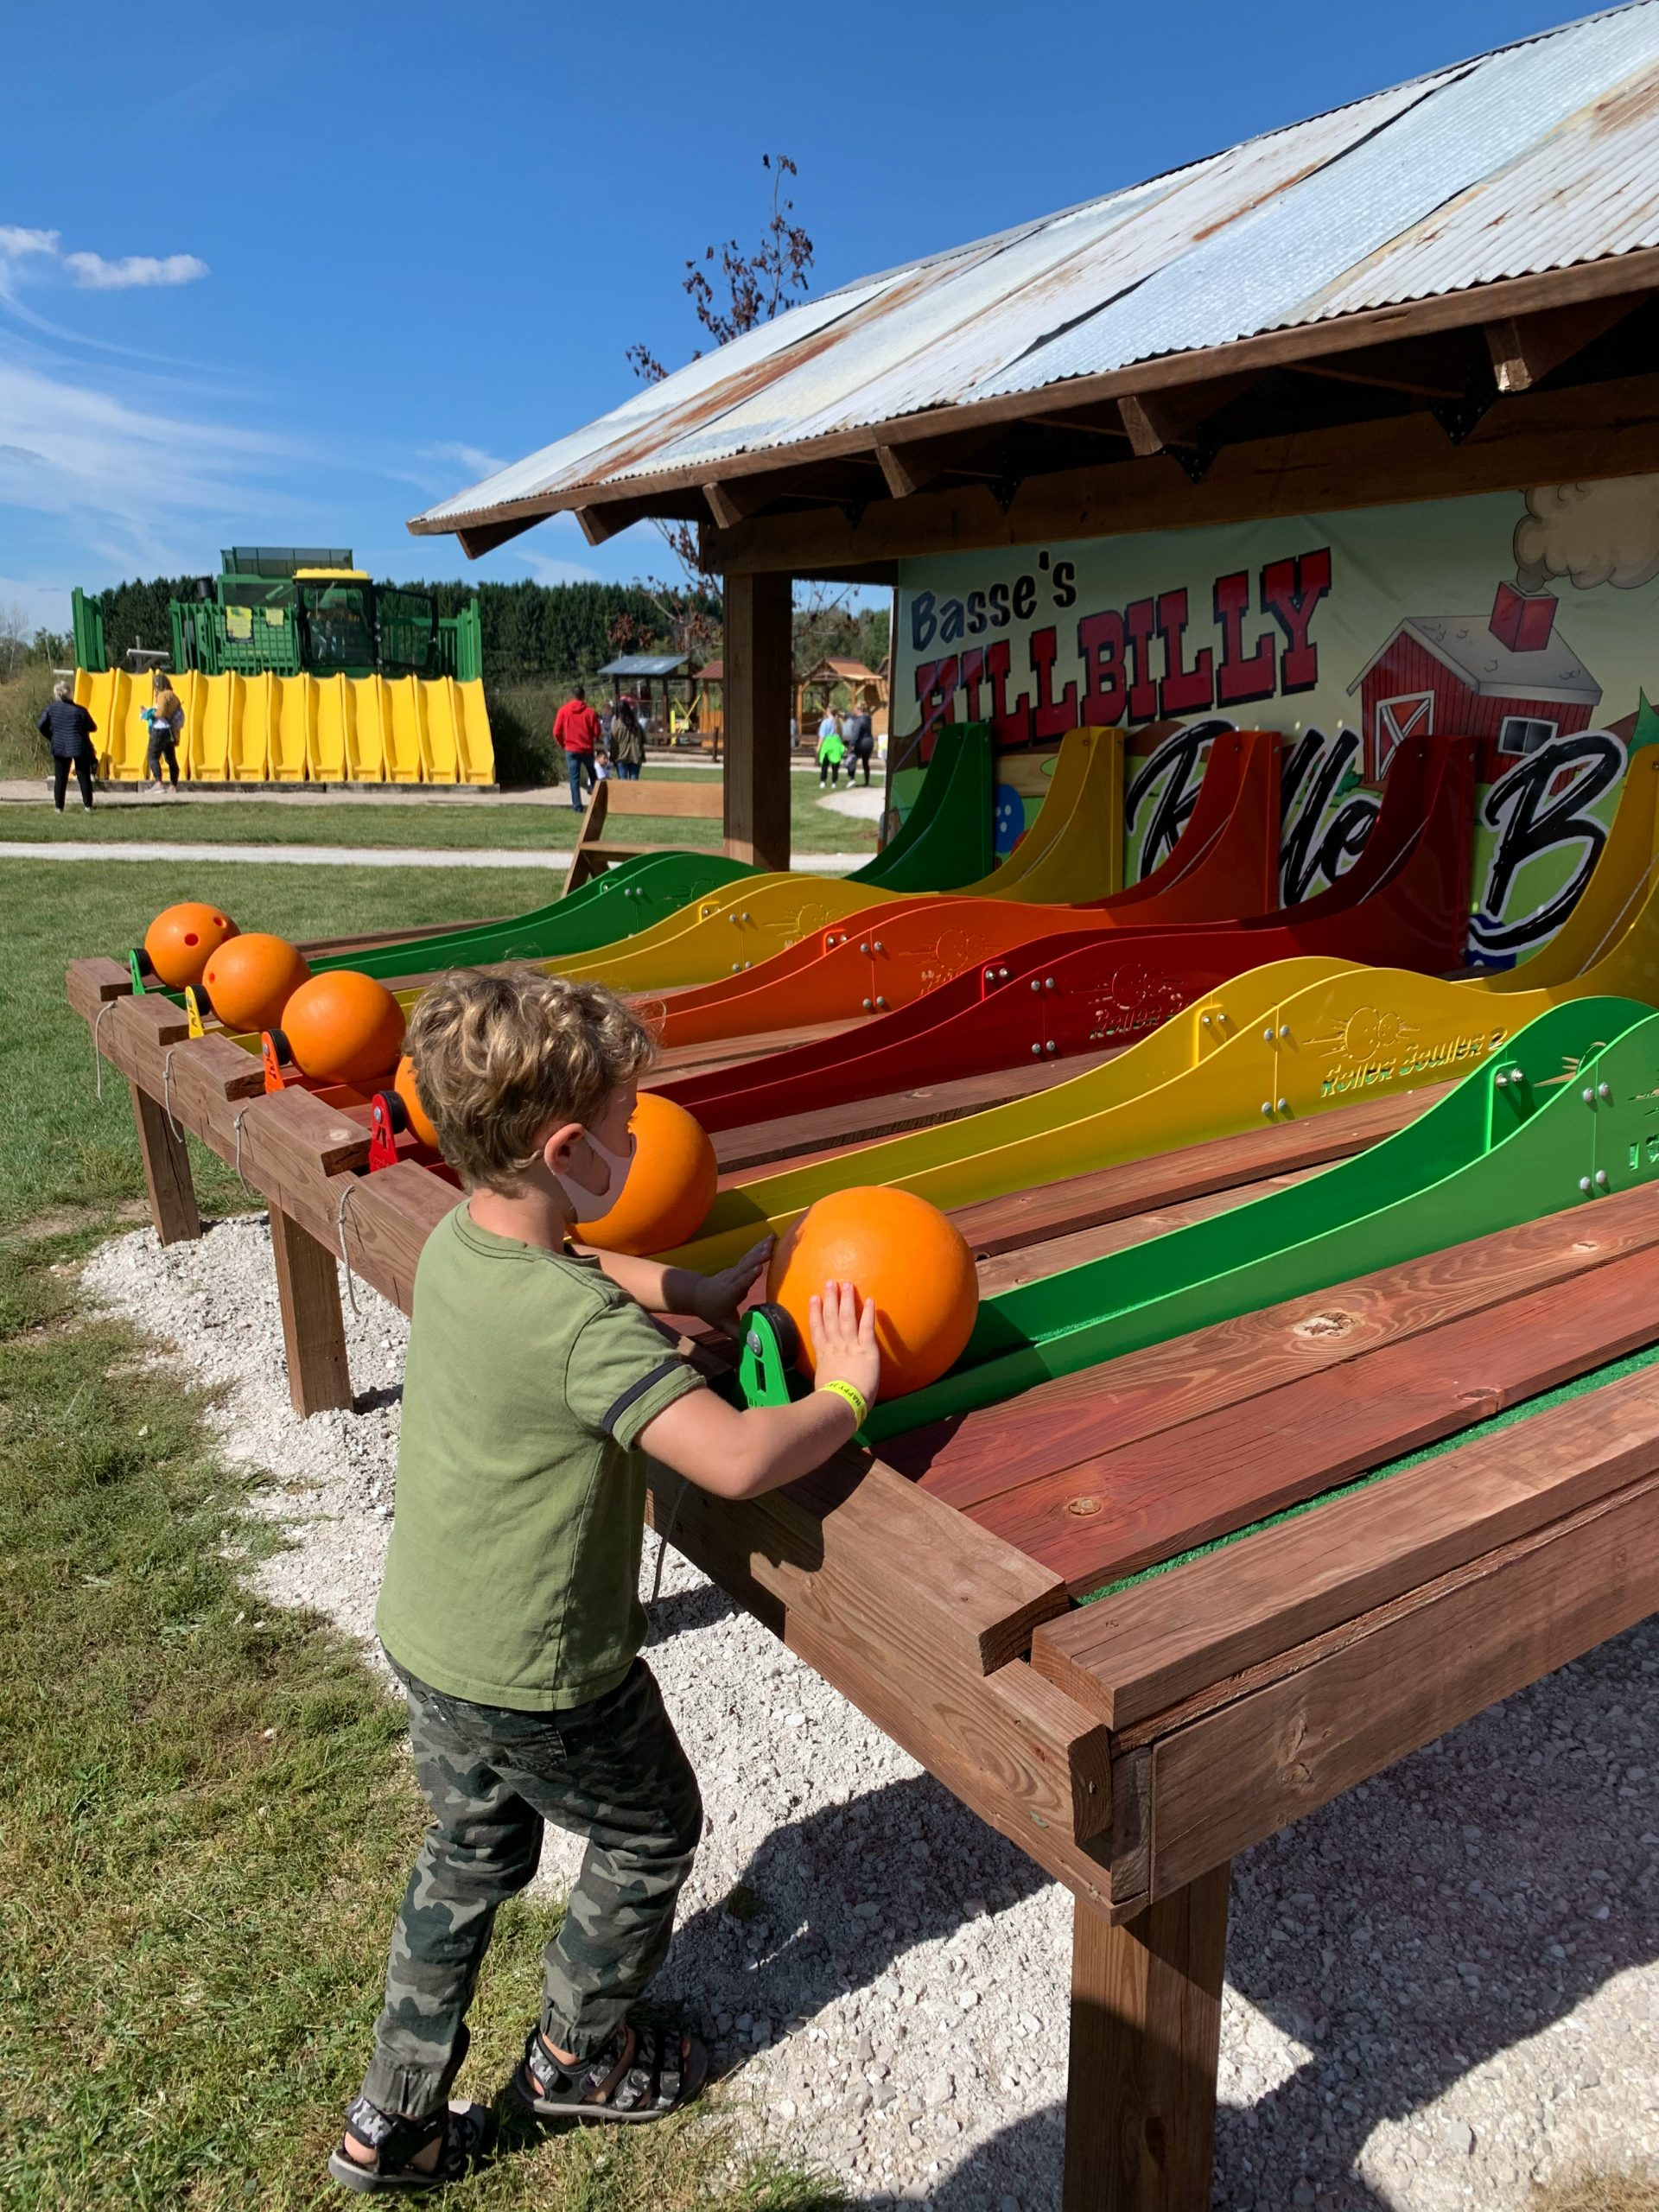 Pumpkin Bowling attraction at Basse's